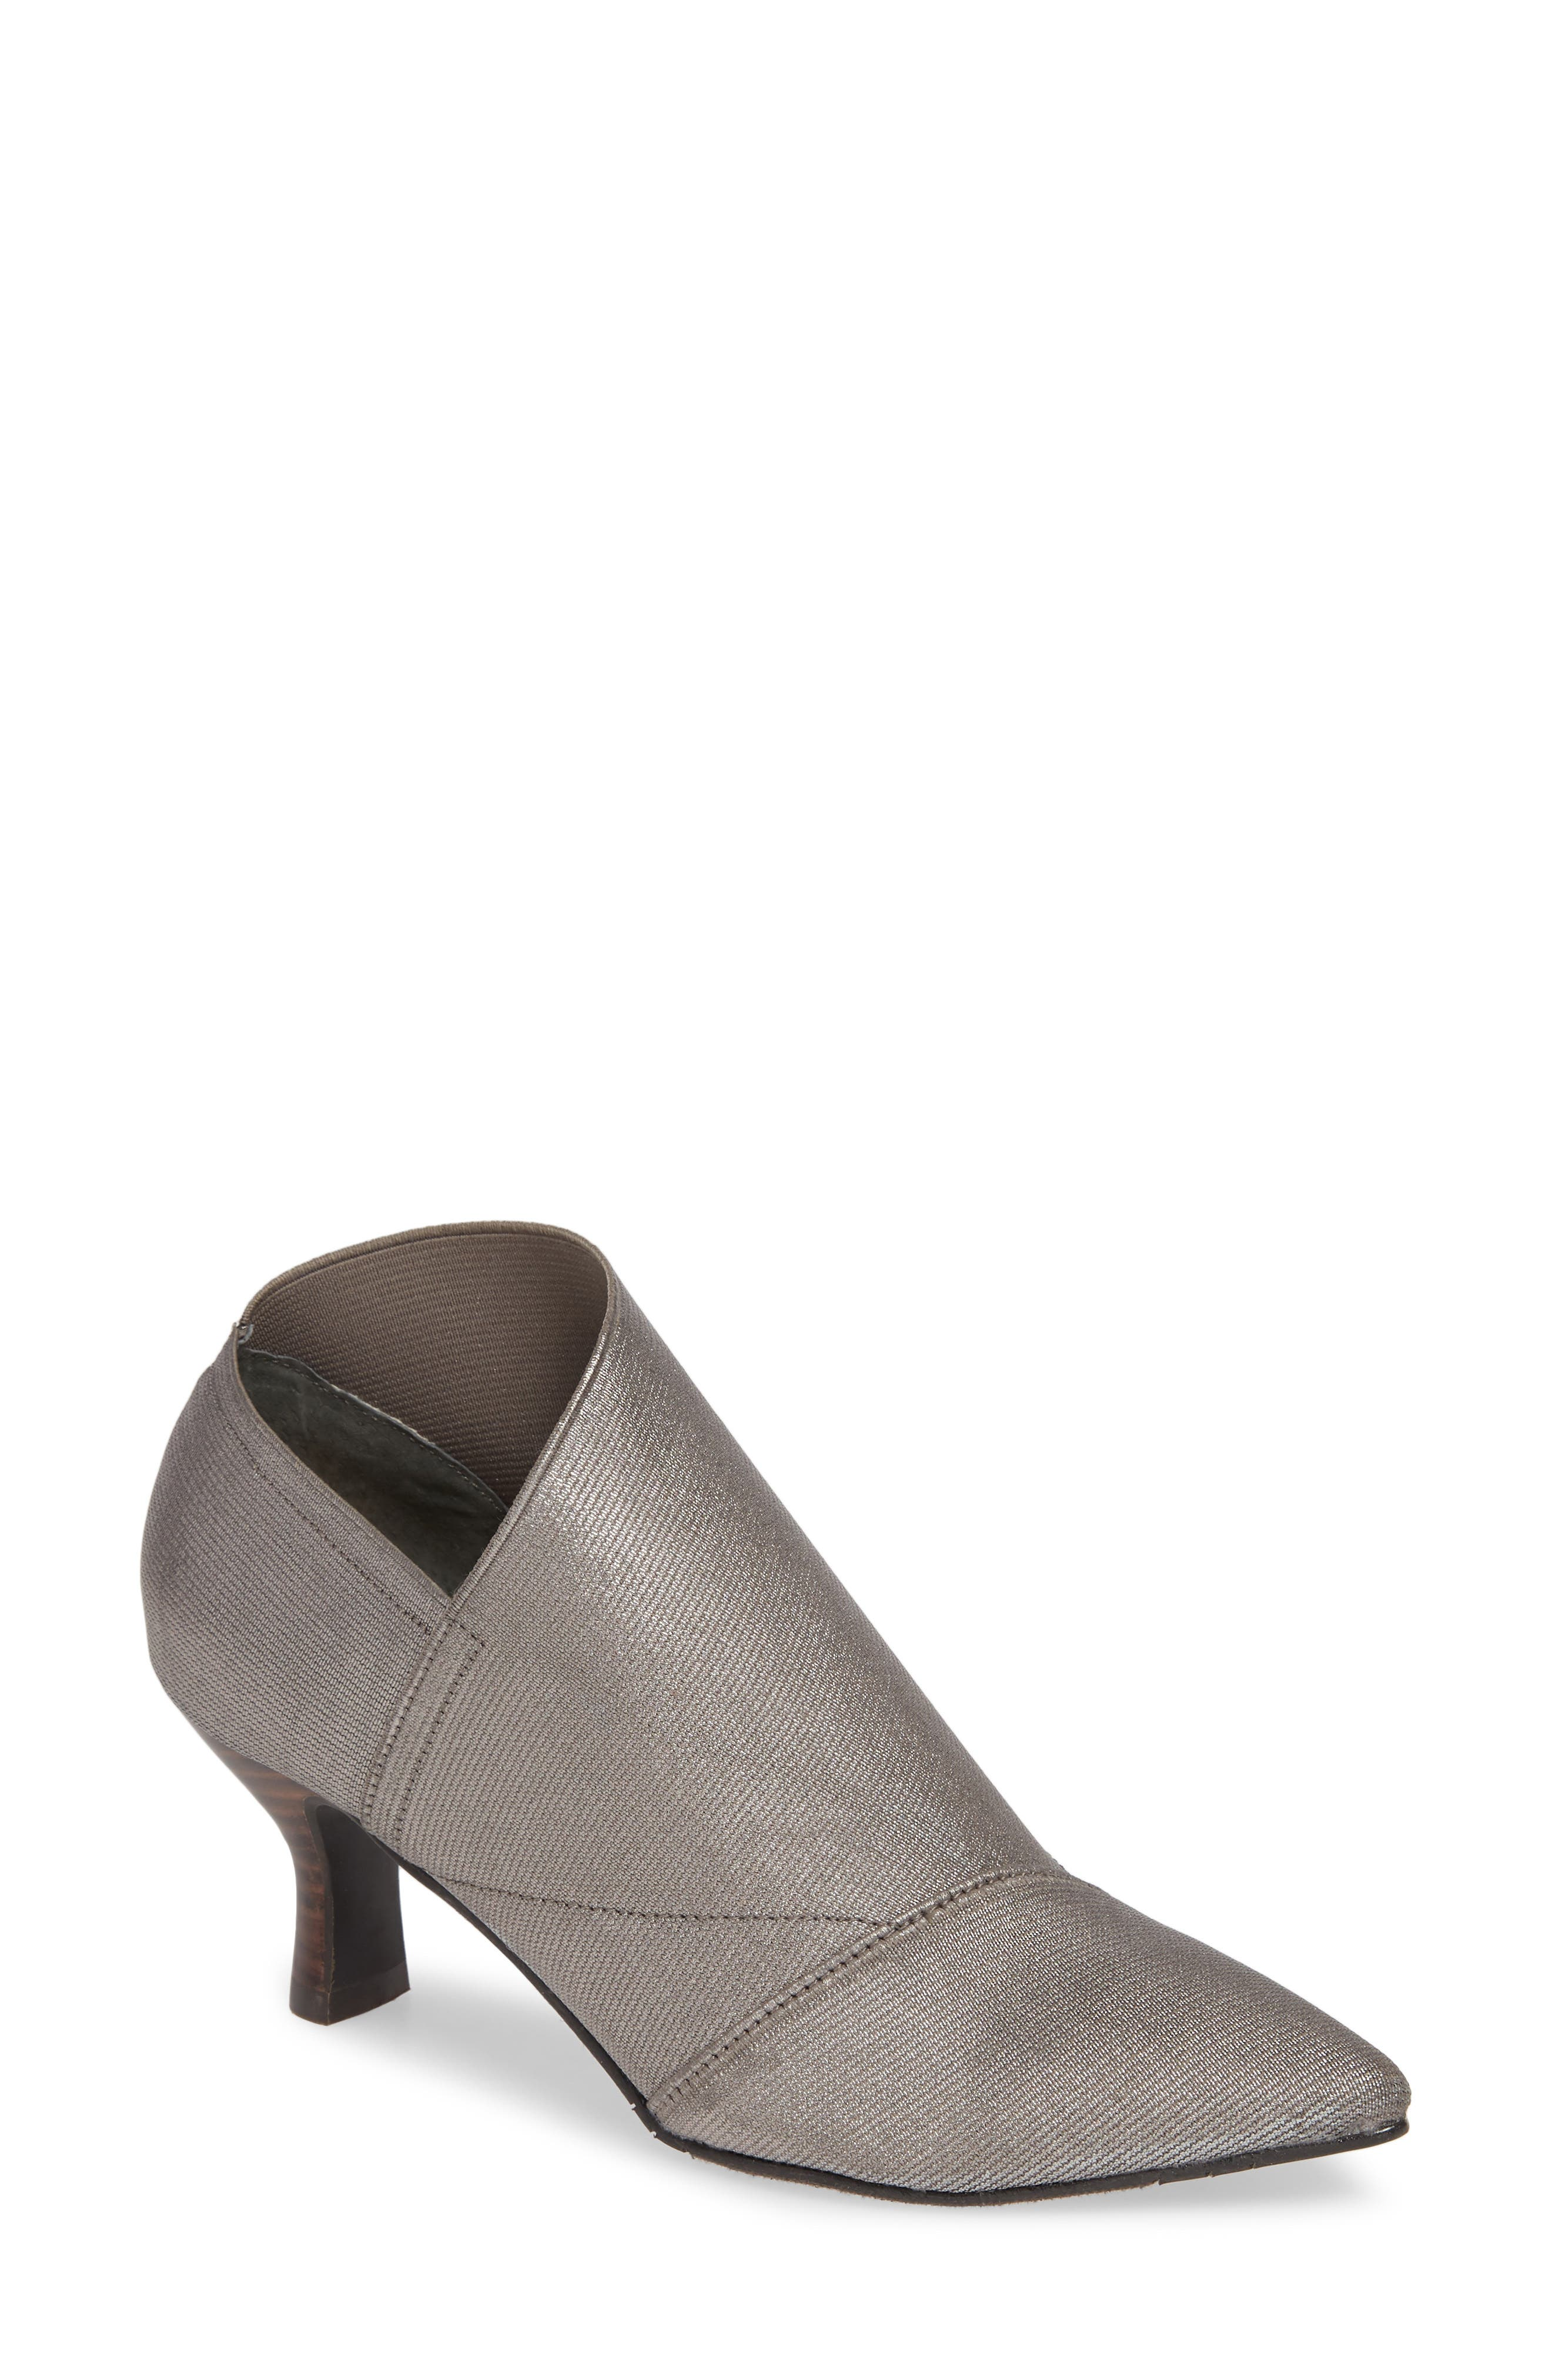 Adrianna Papell Hayes Pointy Toe Bootie- Grey